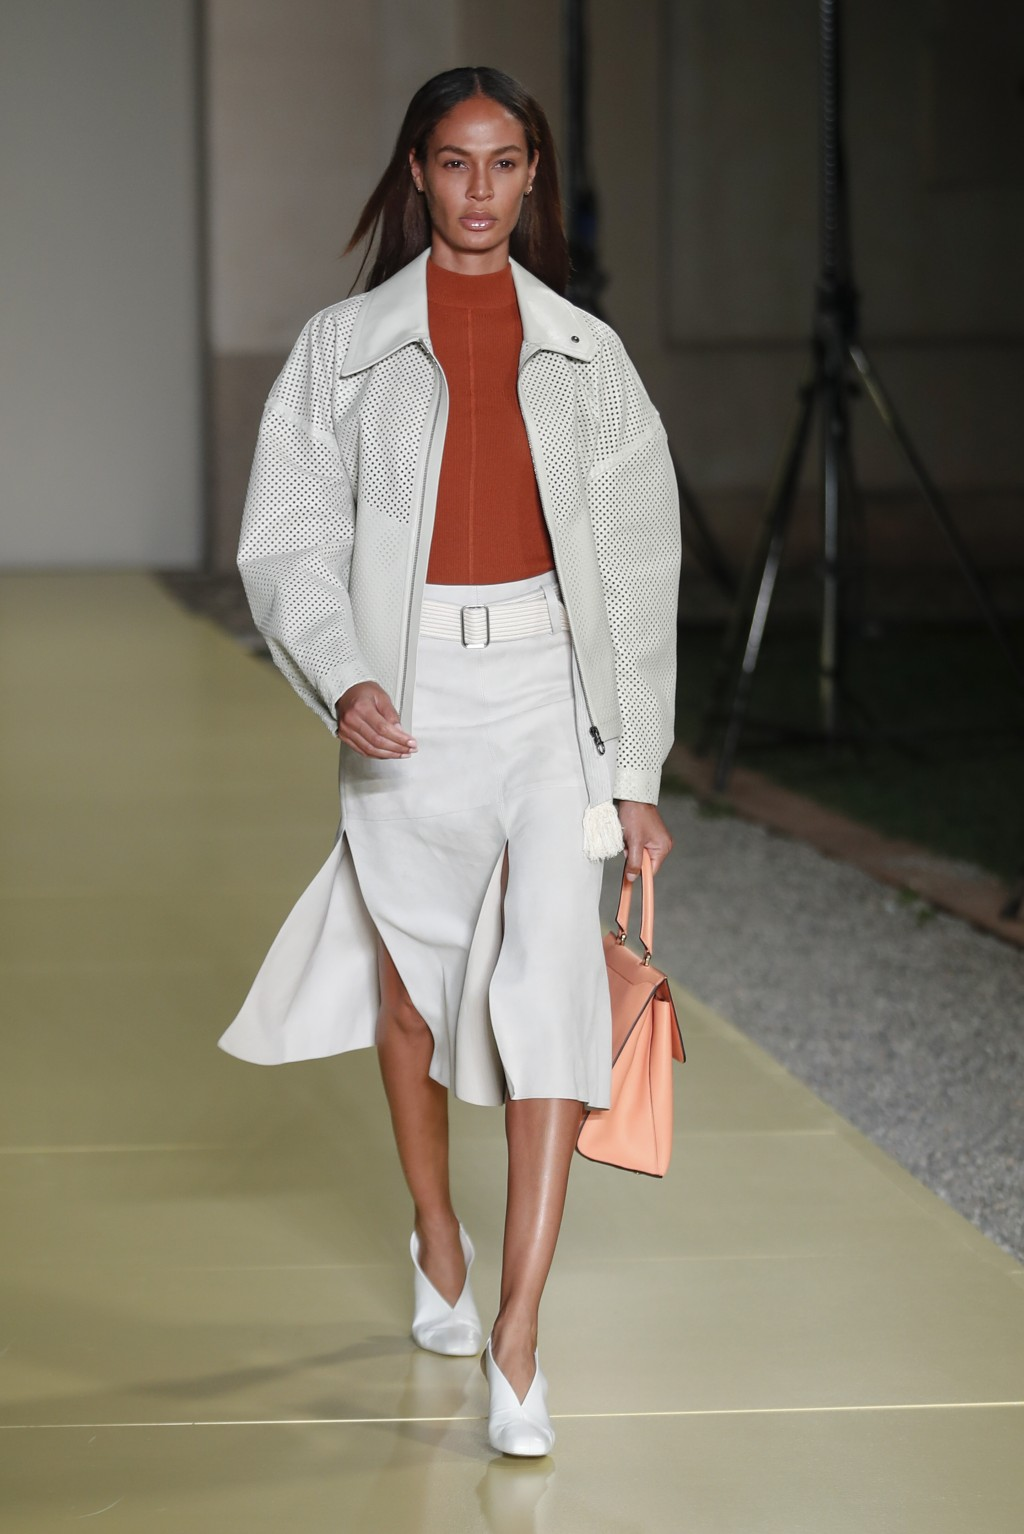 Model Joan Smalls wears a creation as part of the Salvatore Ferragamo 2021 women's spring-summer ready-to-wear collection during the fashion week in M...